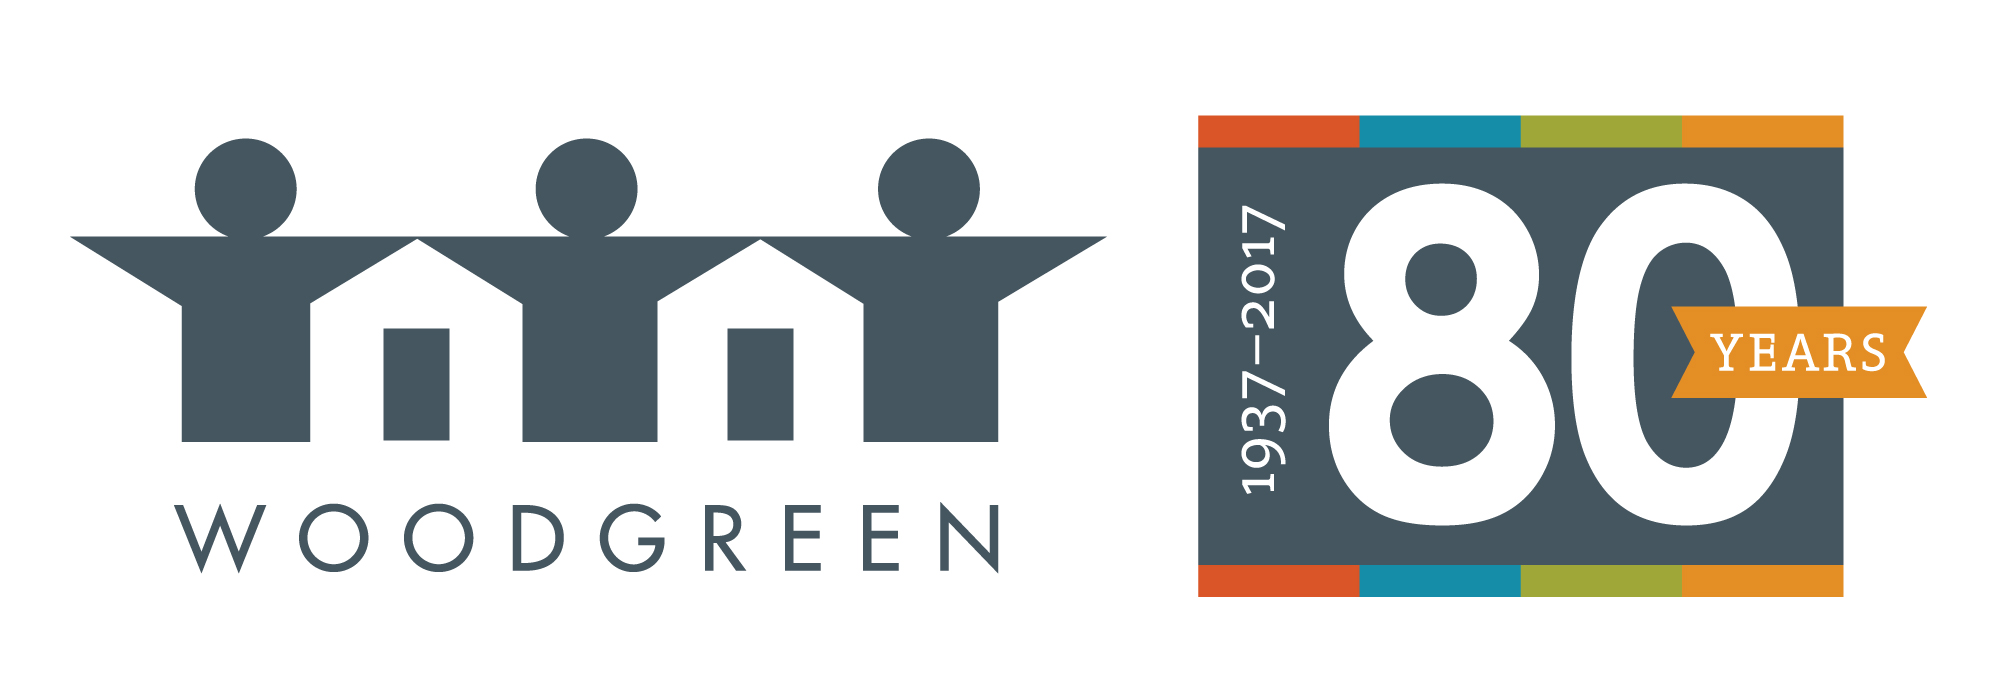 WoodGreen logo.jpg